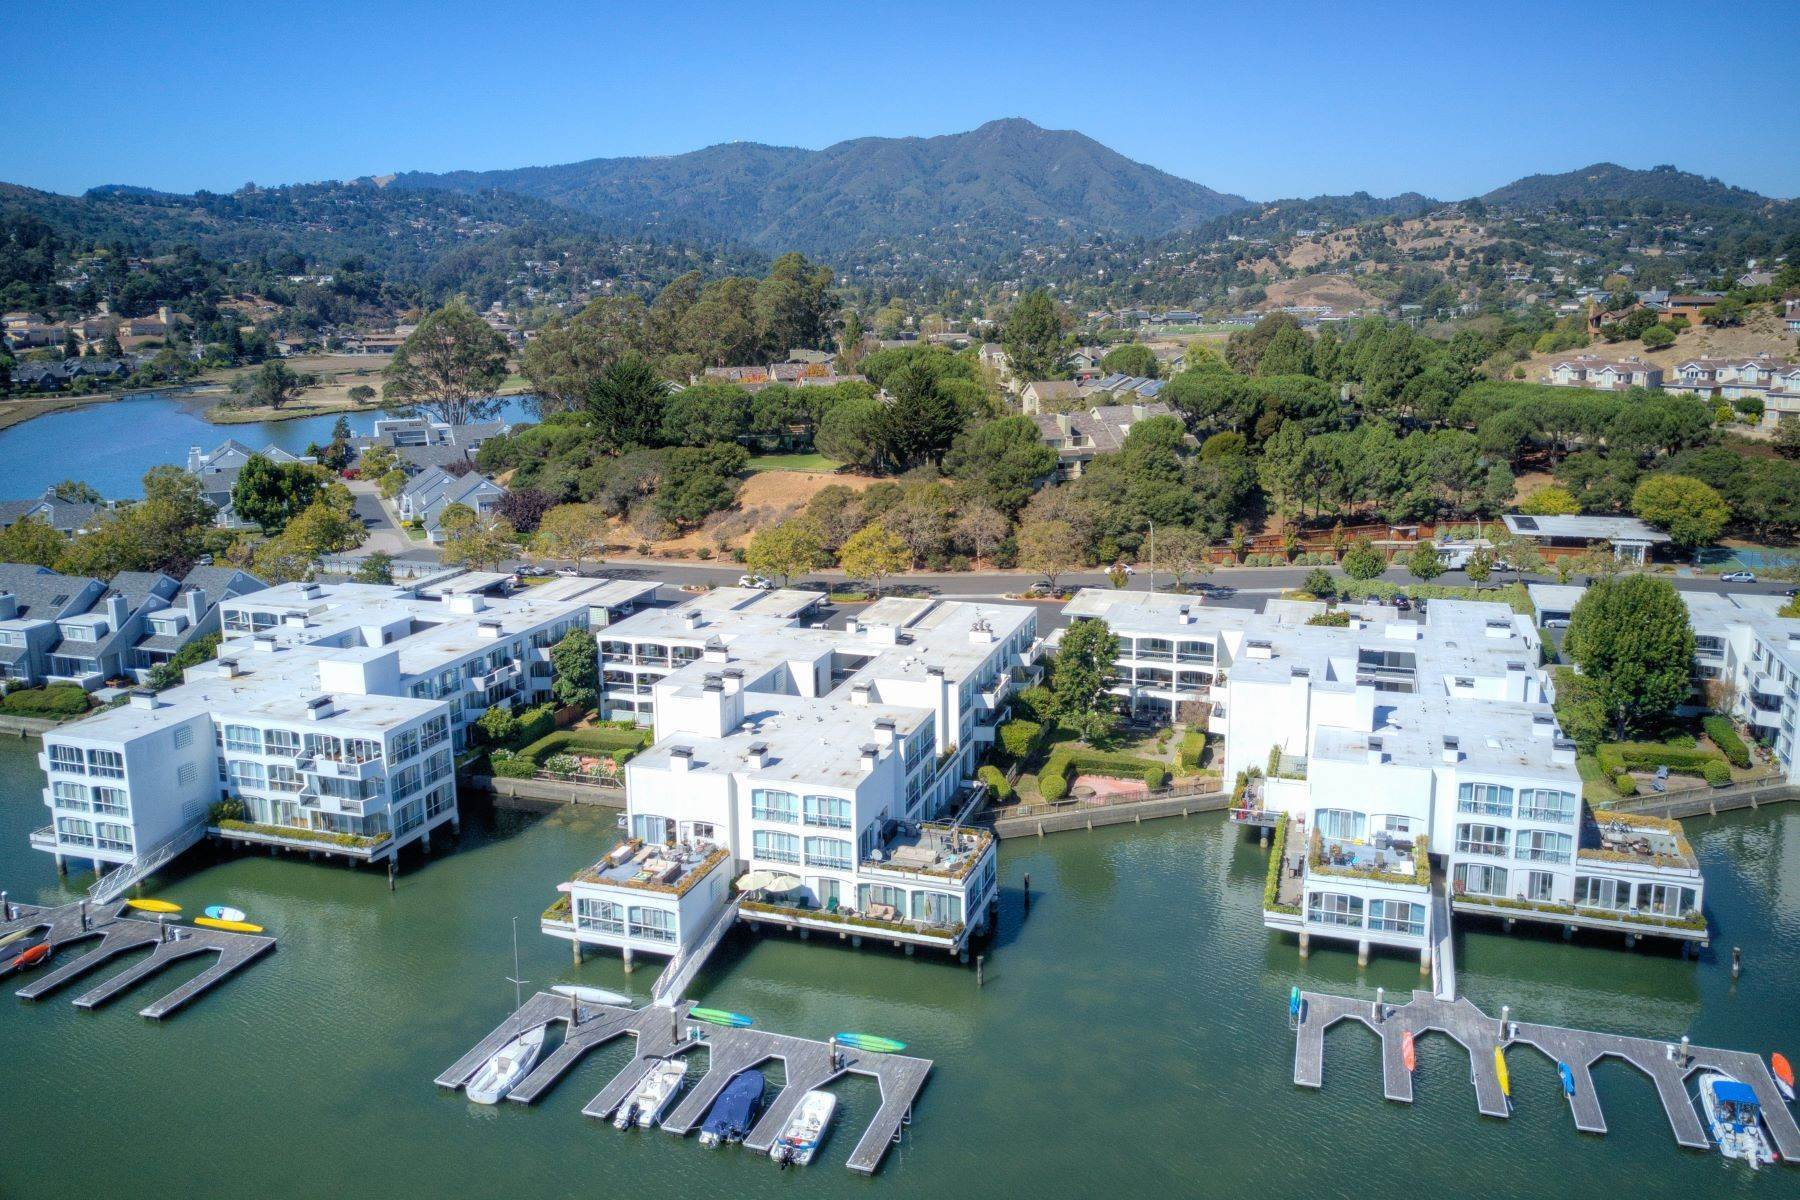 Condominiums at Shelter Bay Stunning Remodel, Private Yard, Spacious Deck Overlooking the Water! 5107 Shelter Bay Avenue Mill Valley, California 94941 United States